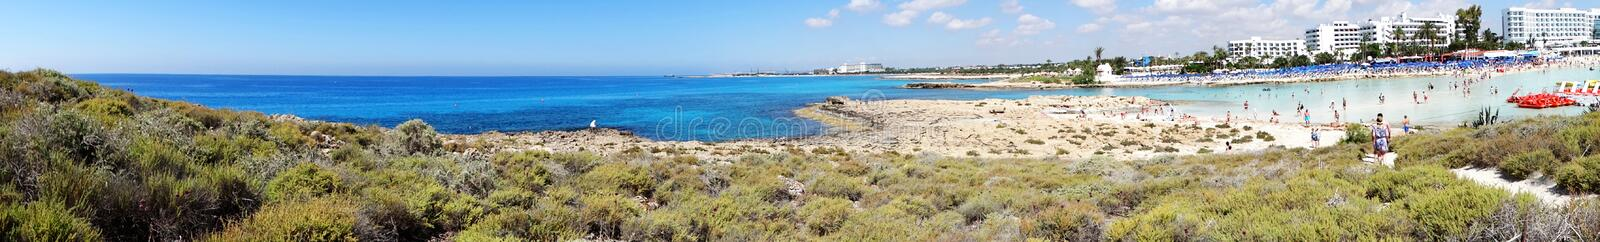 Panorama beach coast landscape mediterranean sea Cyprus island stock photography